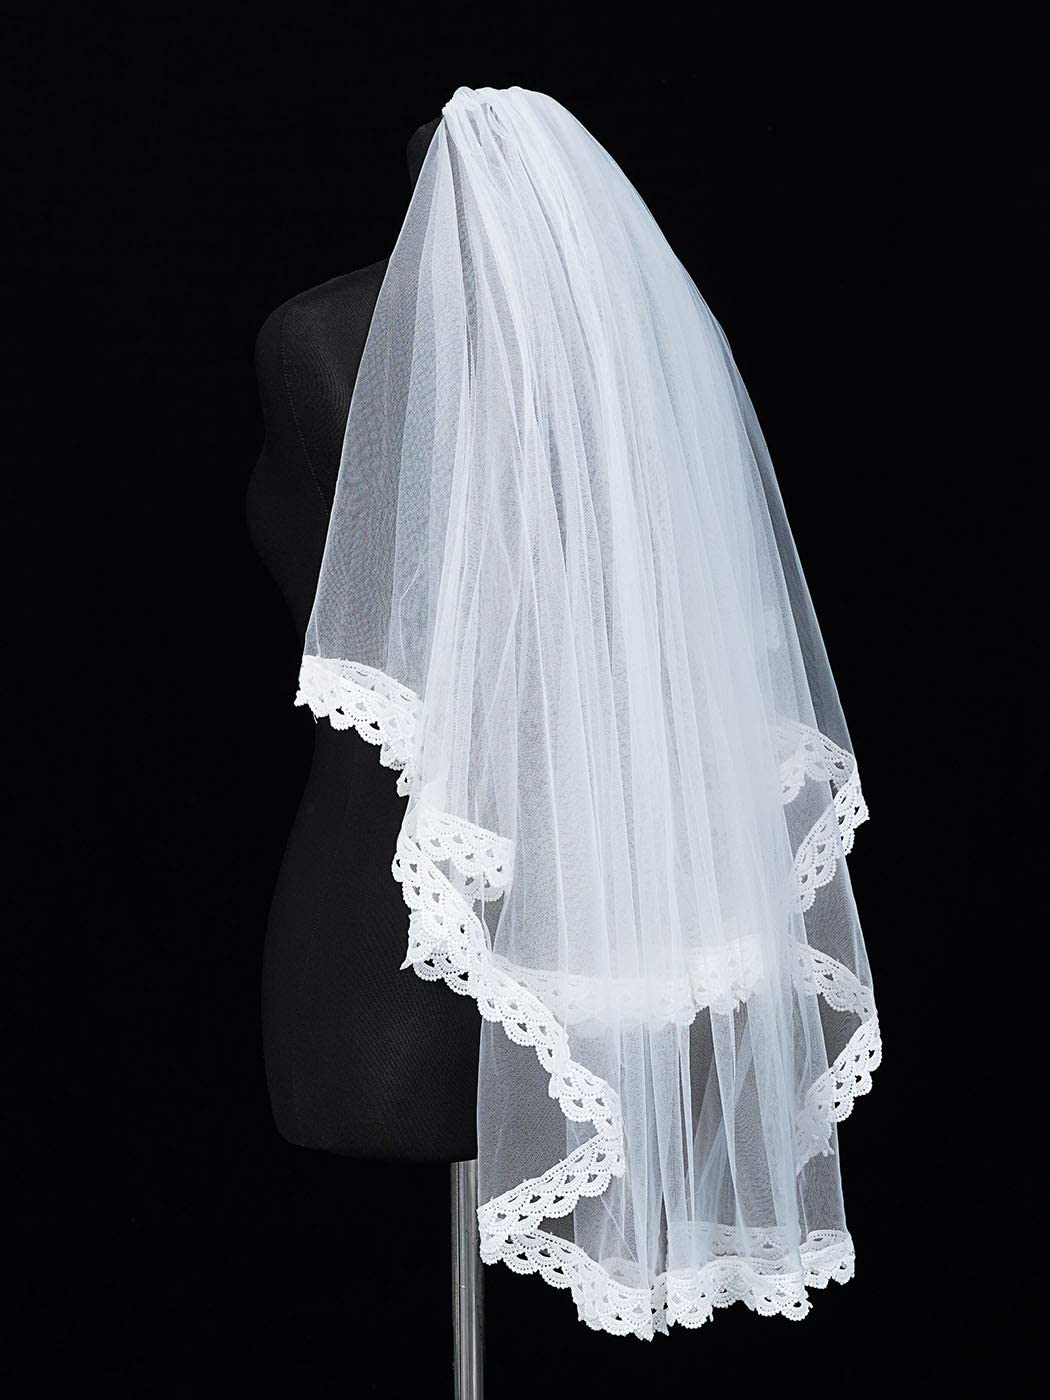 Unicra 2 Tiers Bride Wedding Veil White Short Elbow Length Bridal Tulle with Lace Edge and Comb 25.6/33.5 Inch